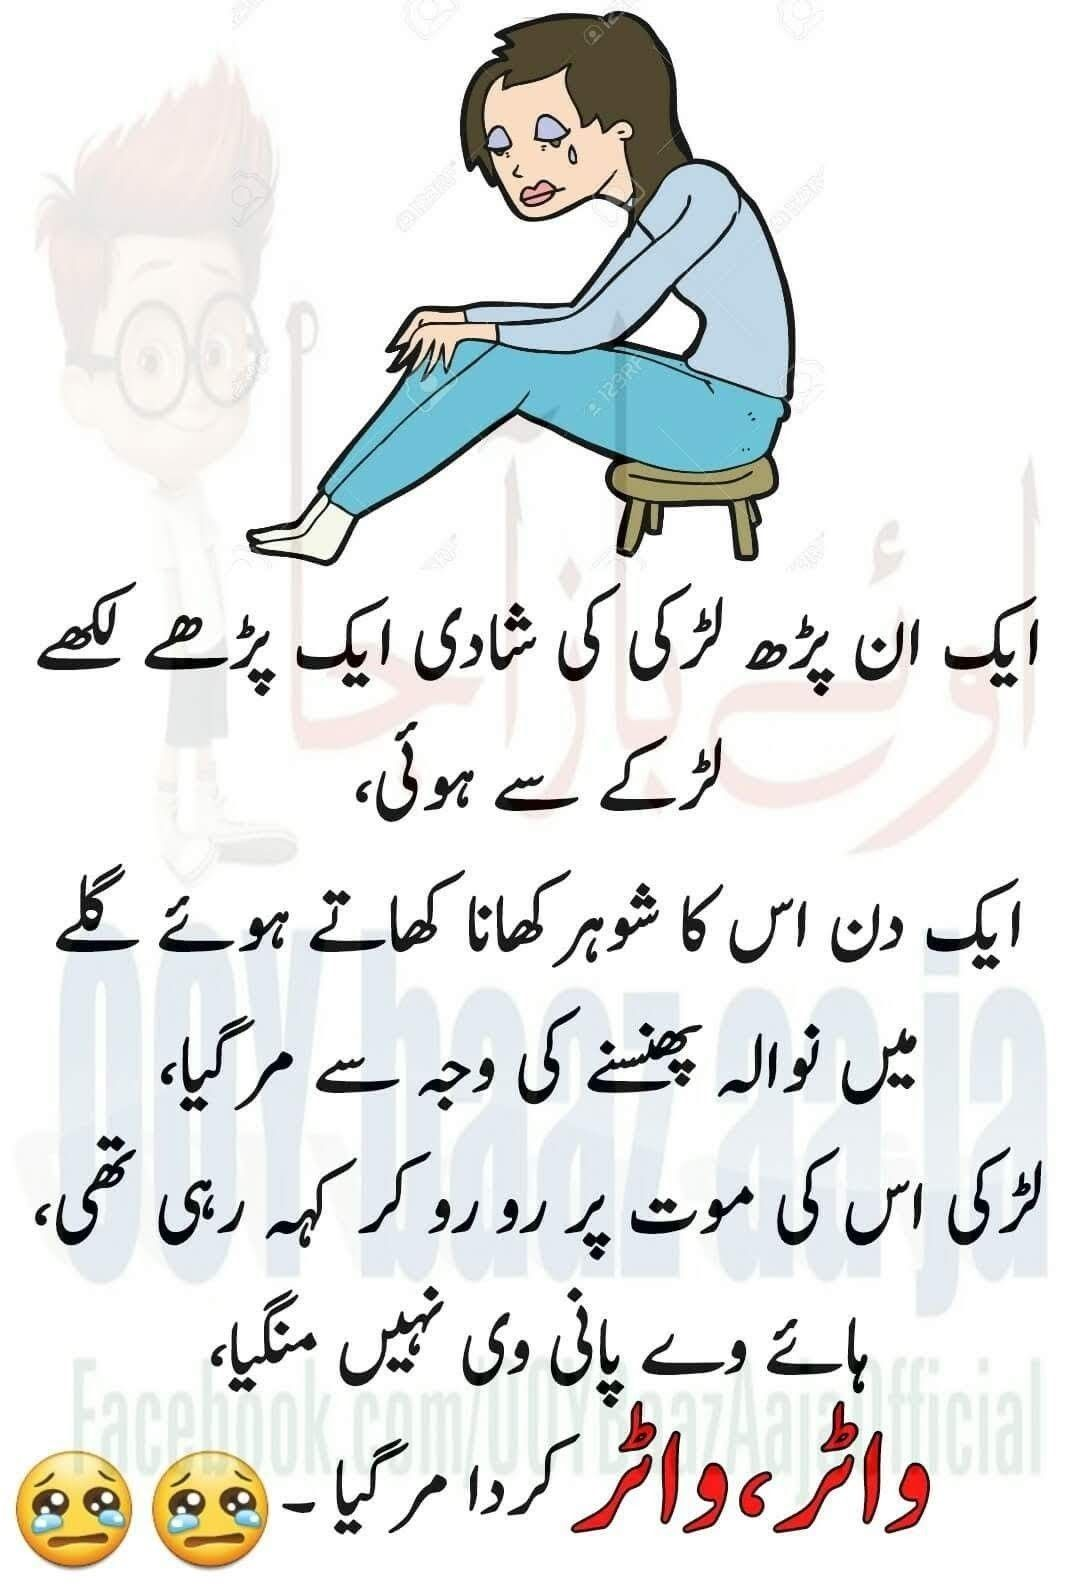 Pin by Meroo khan on jokes in 2020 Fun quotes funny